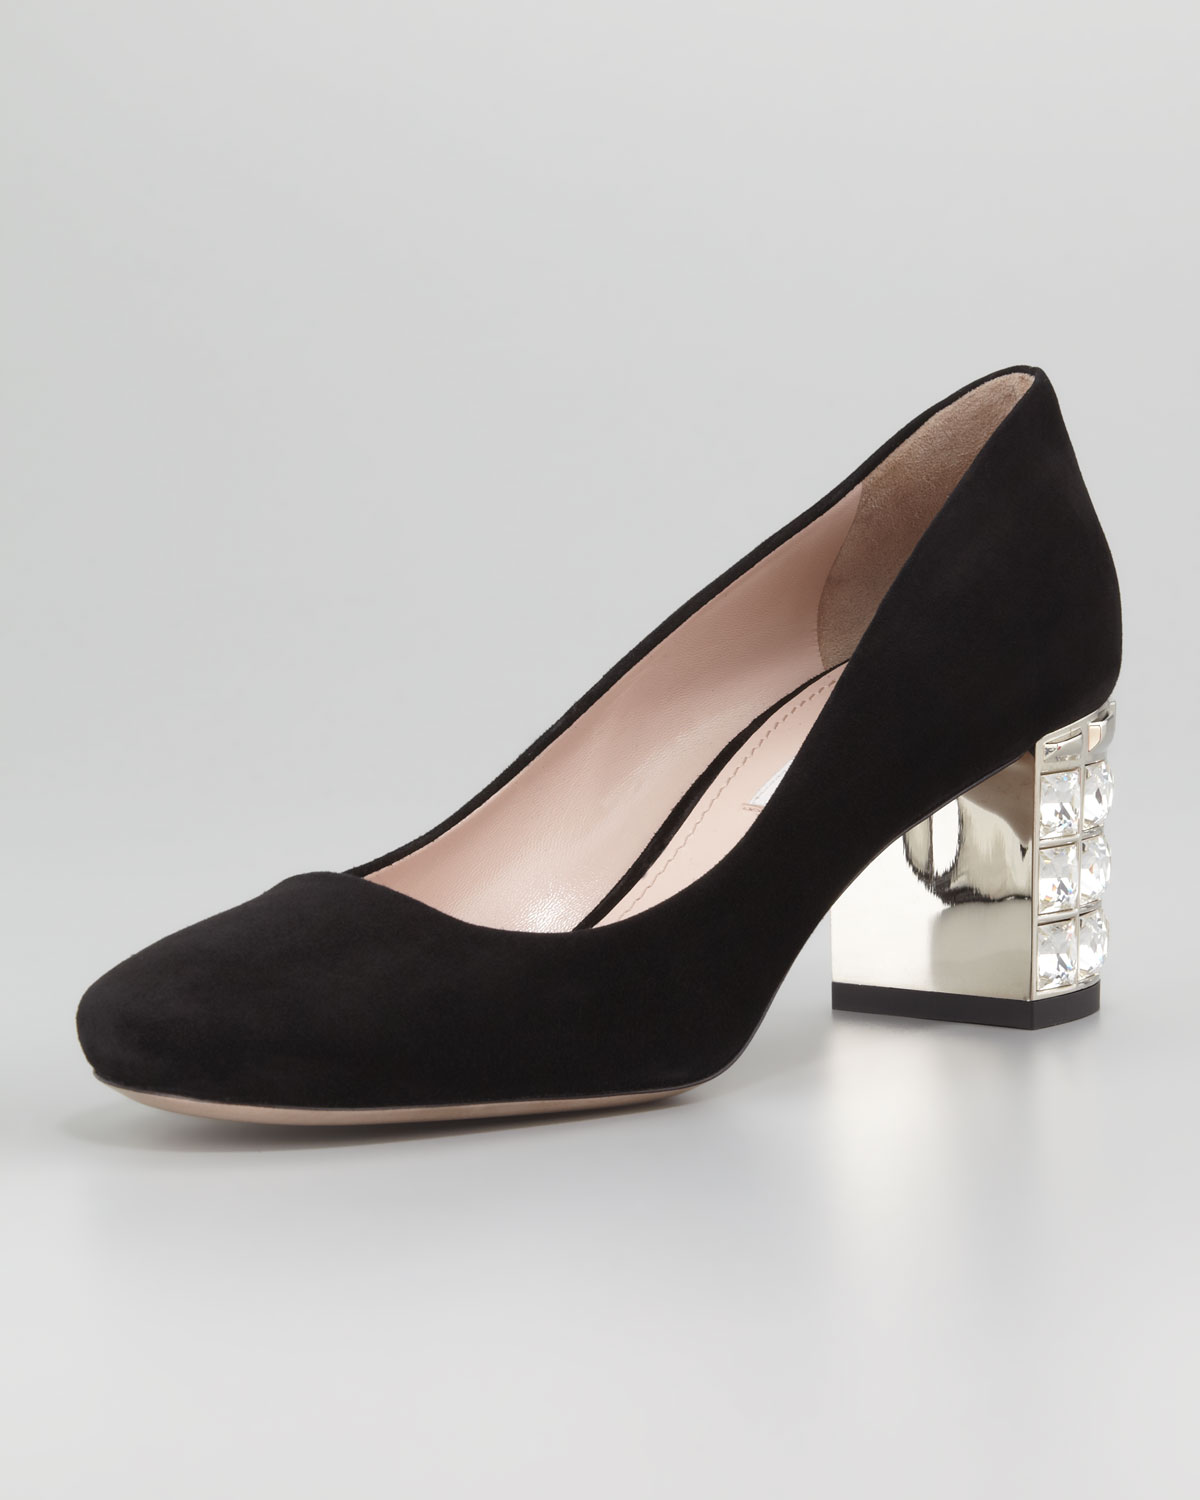 d9e8e05c4ba Lyst - Miu Miu Suede Jewel Heeled Pump in Black